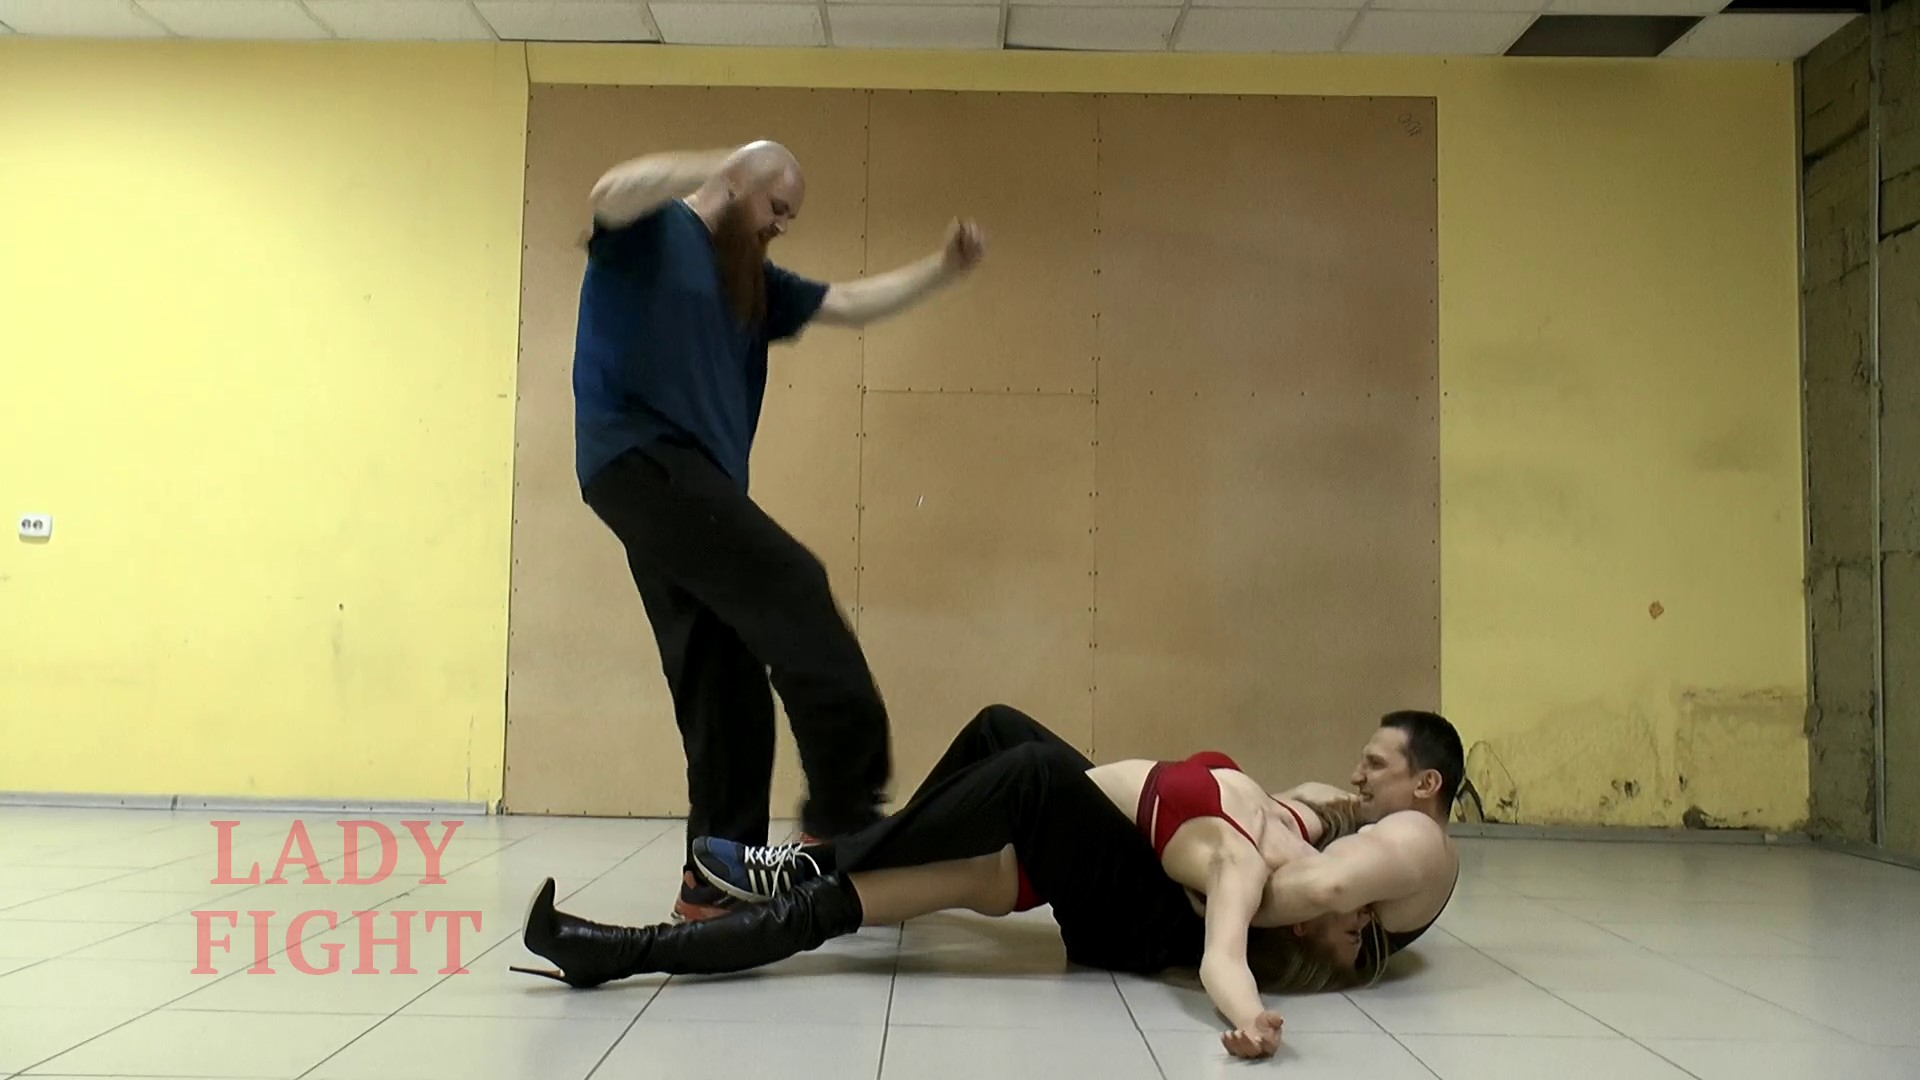 LADYFIGHT-Deadly-Wrestling-For-Lora-77